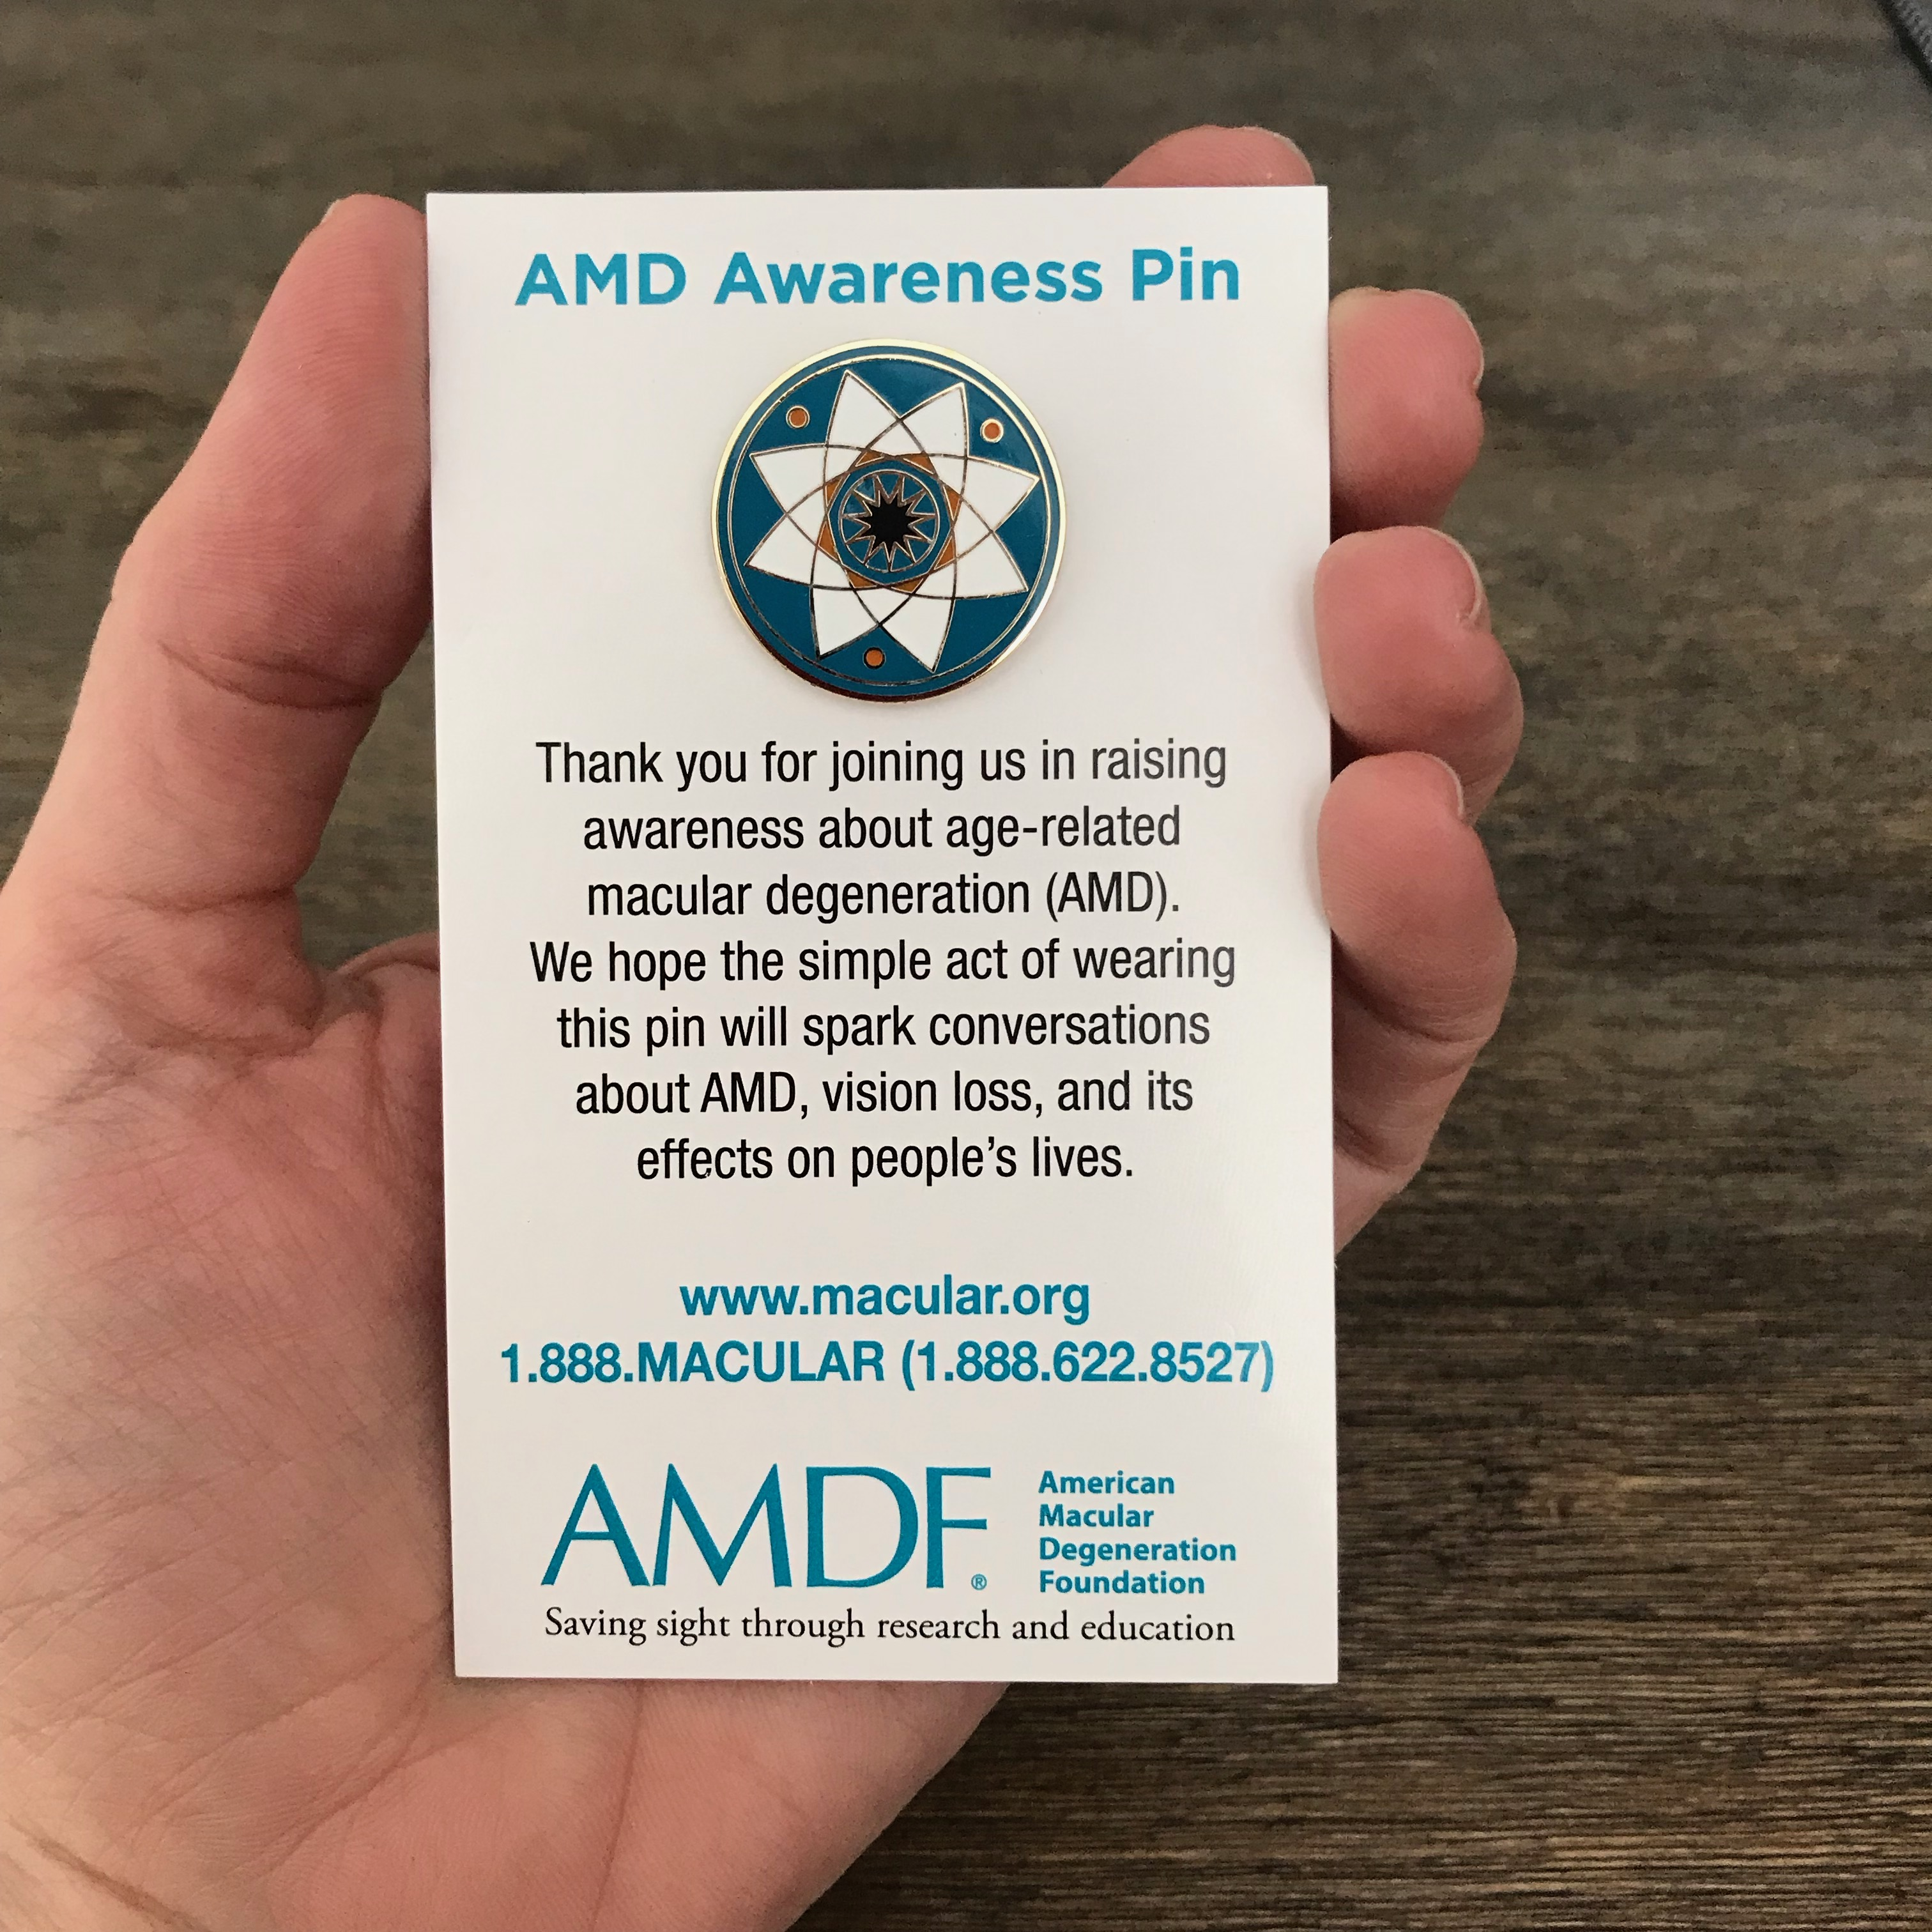 Age-related macular degeneration awareness pin mounted on backing card.